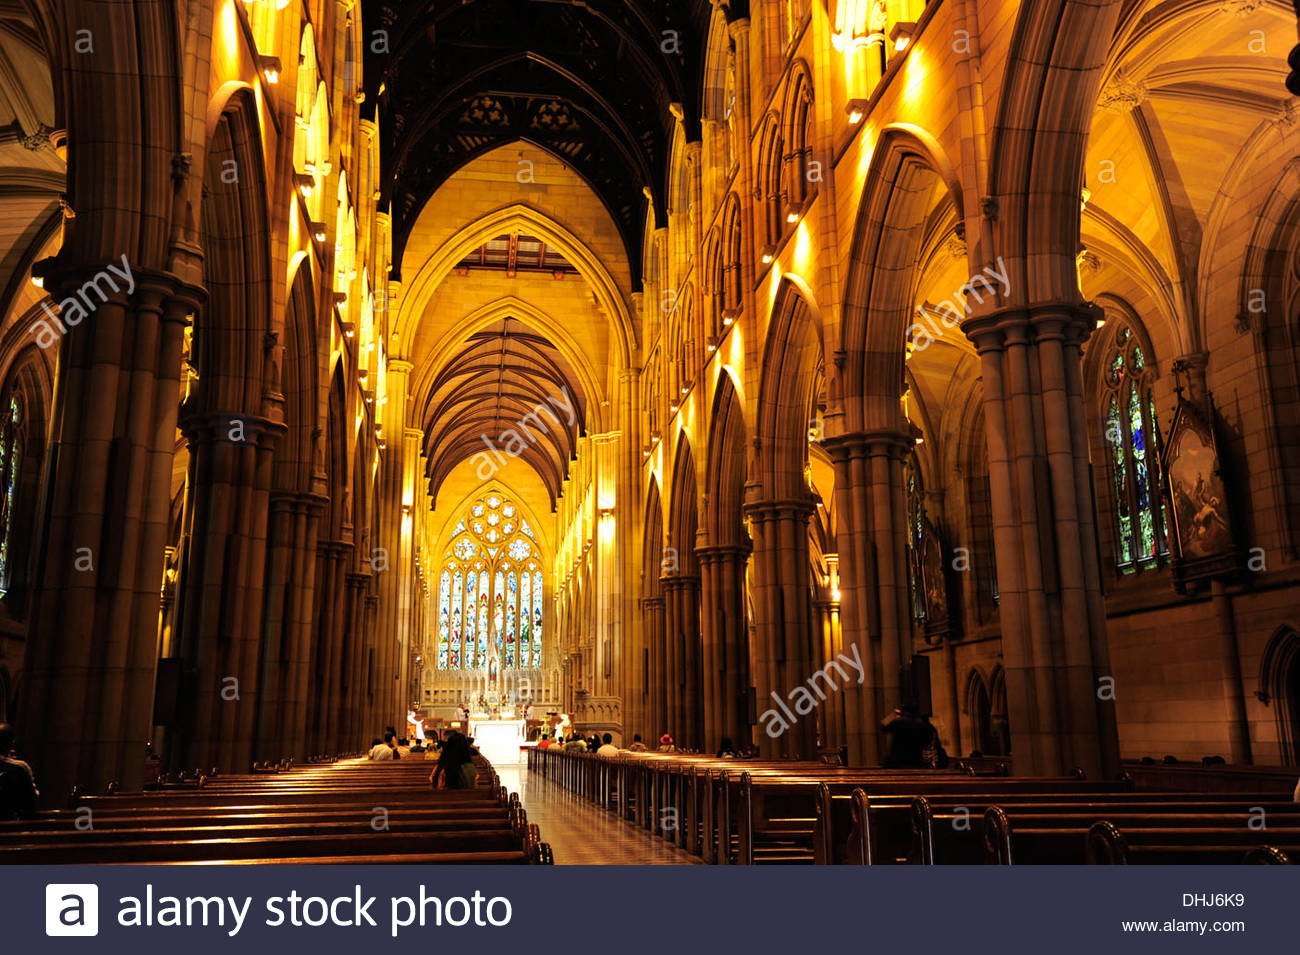 Interior View Of The St Marys Cathedral Main Church In Neo Gothic Style